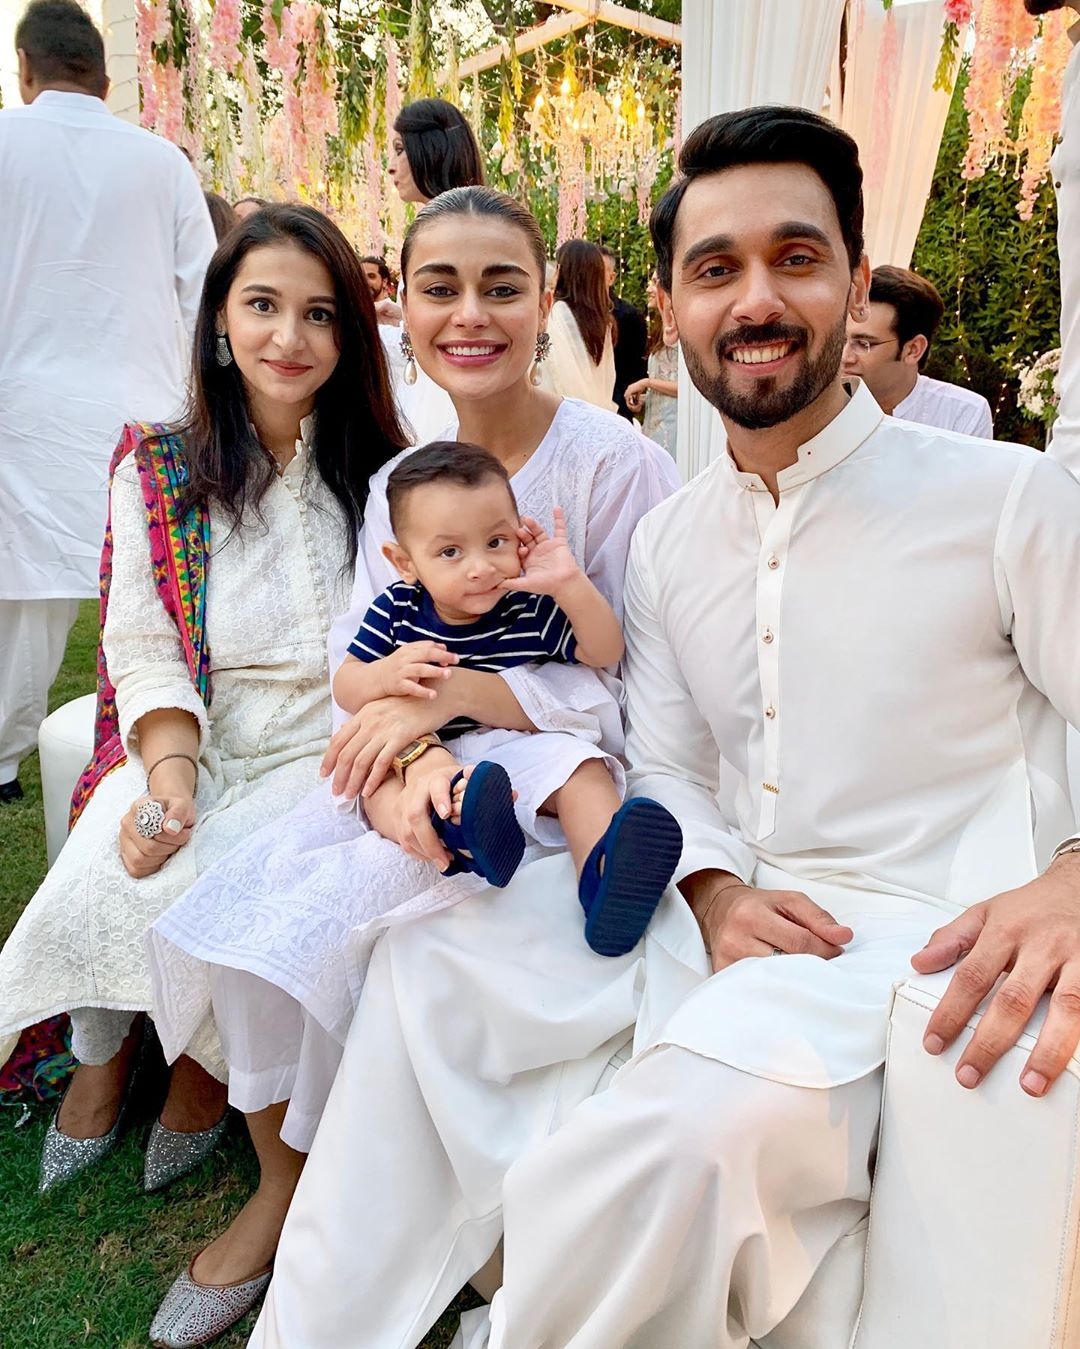 Awesome Photos of Anchor Abdullah Sultan with his Wife and Son at Iftar Dinner